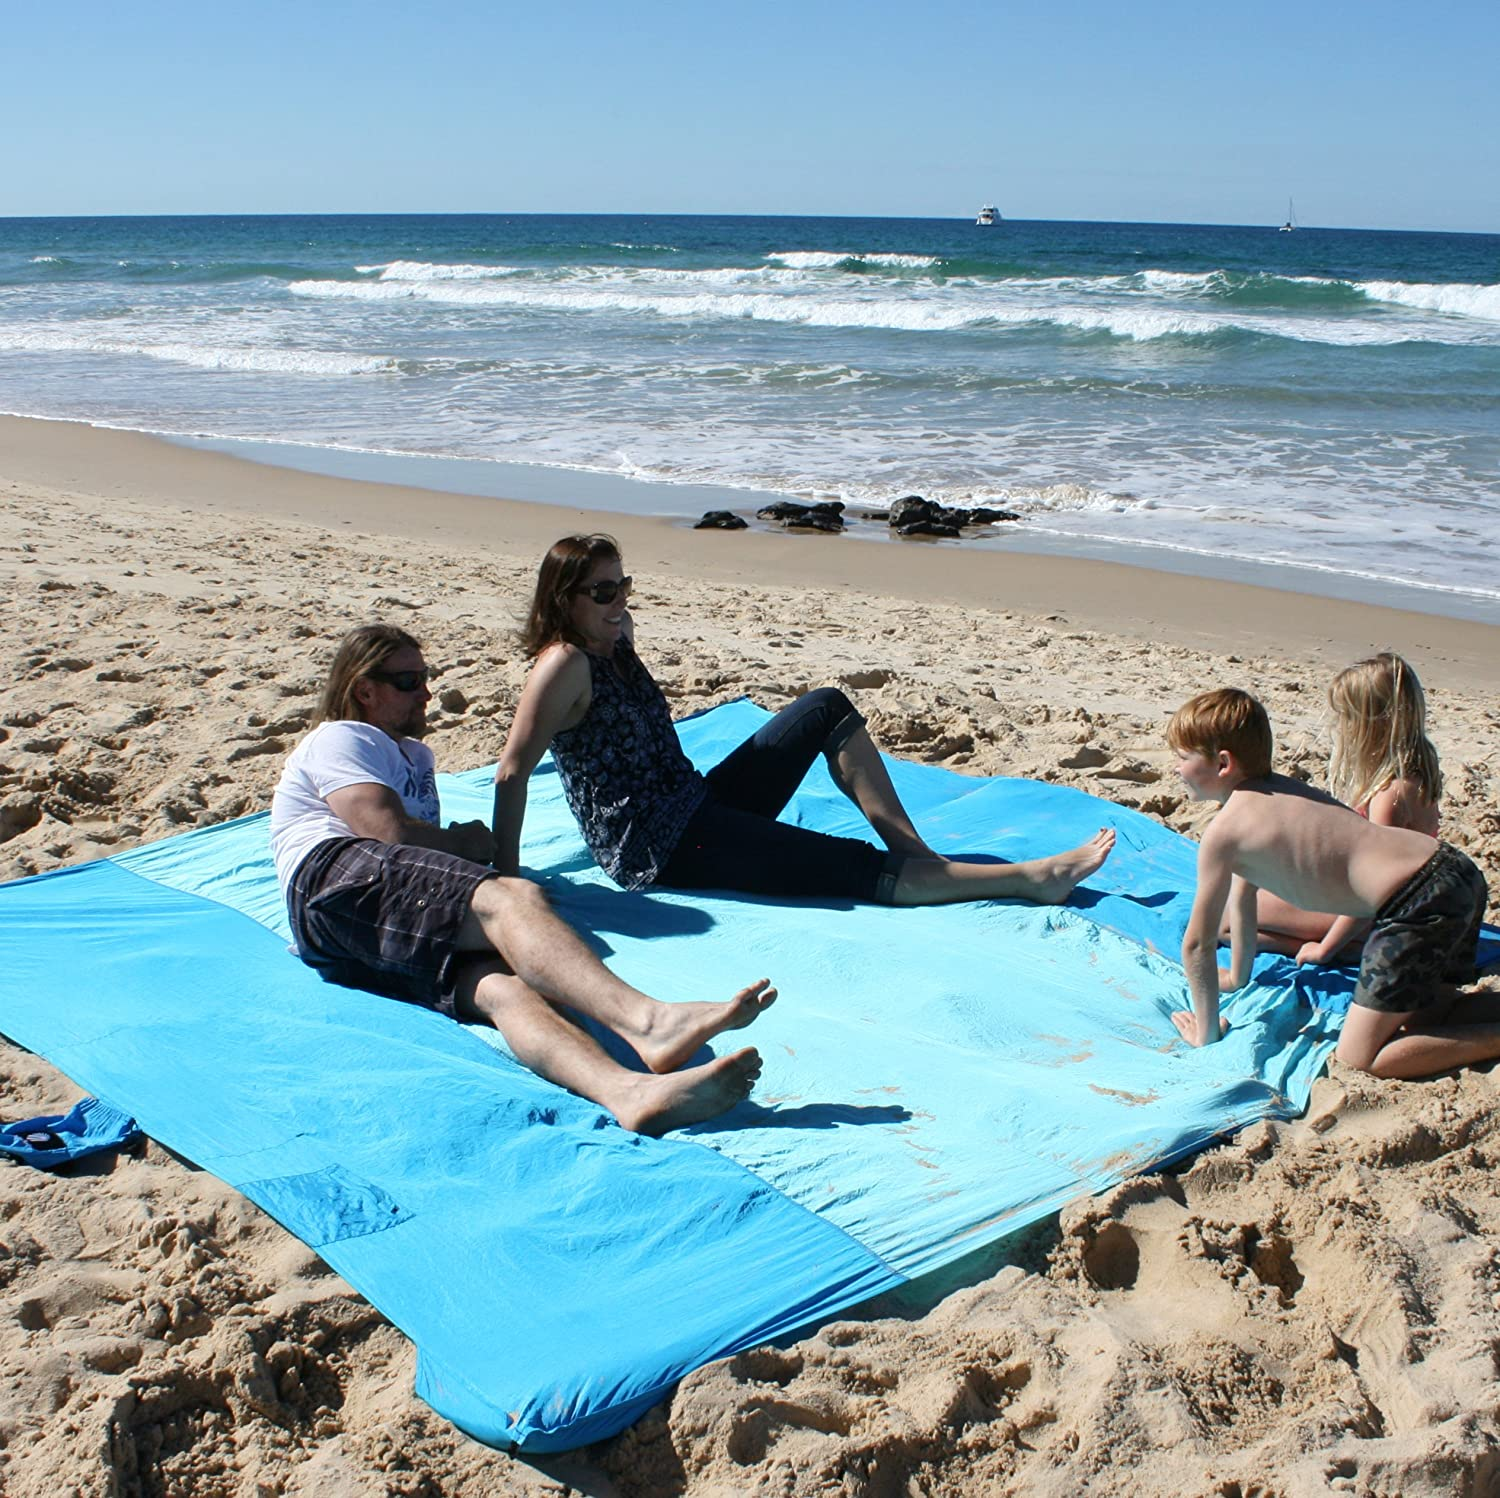 Parachute Nylon Metal Stakes Lightweight Glowing Horizon Sand Free Beach Blanket Sand Proof//Picnic Blanket- Extra Large 9 x 10 in Compact Bag- 8 Hidden Sand Pockets Storage Pocket